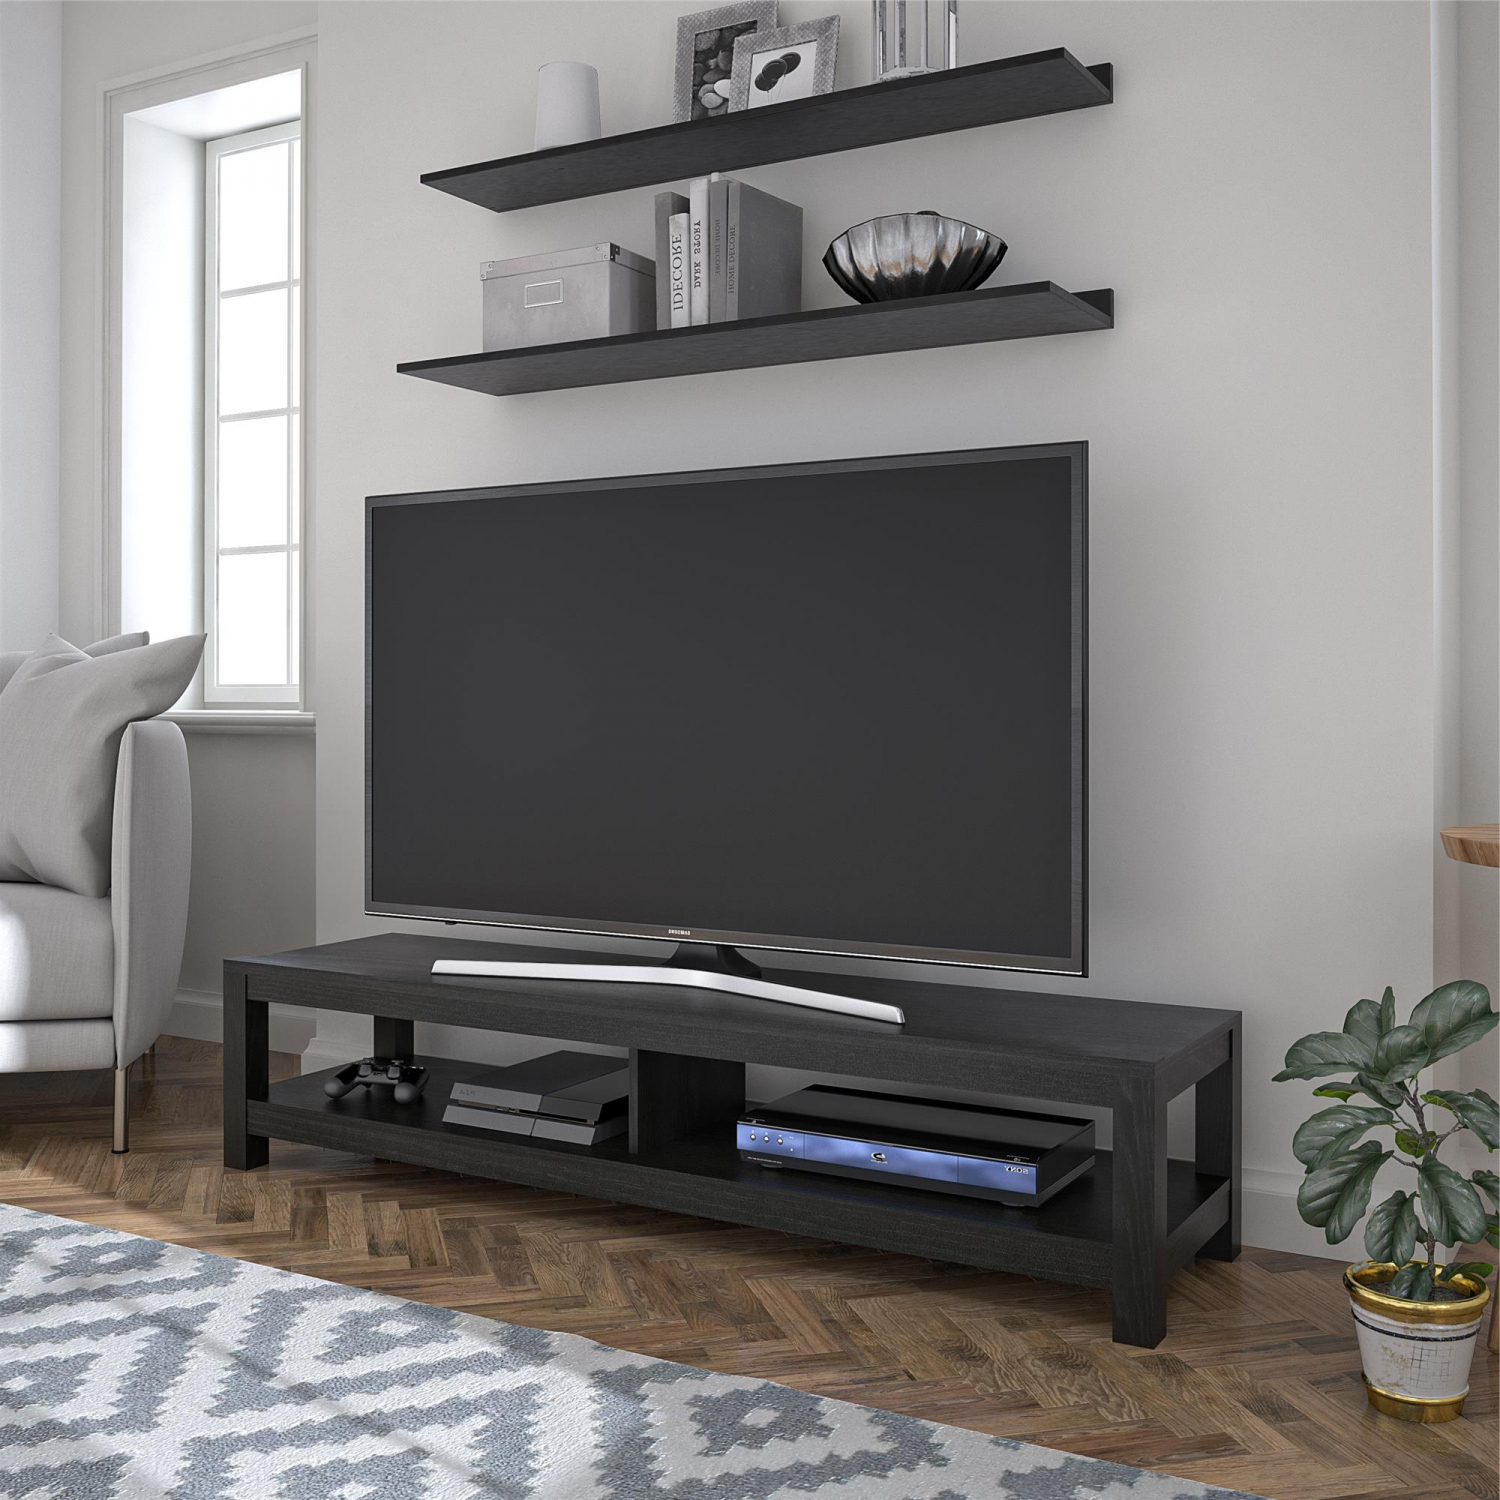 """Adora Tv Stands For Tvs Up To 65"""" Within Widely Used 65 Inch Wood Tv Stand Unit W/ Open Shelf Entertainment (View 8 of 20)"""